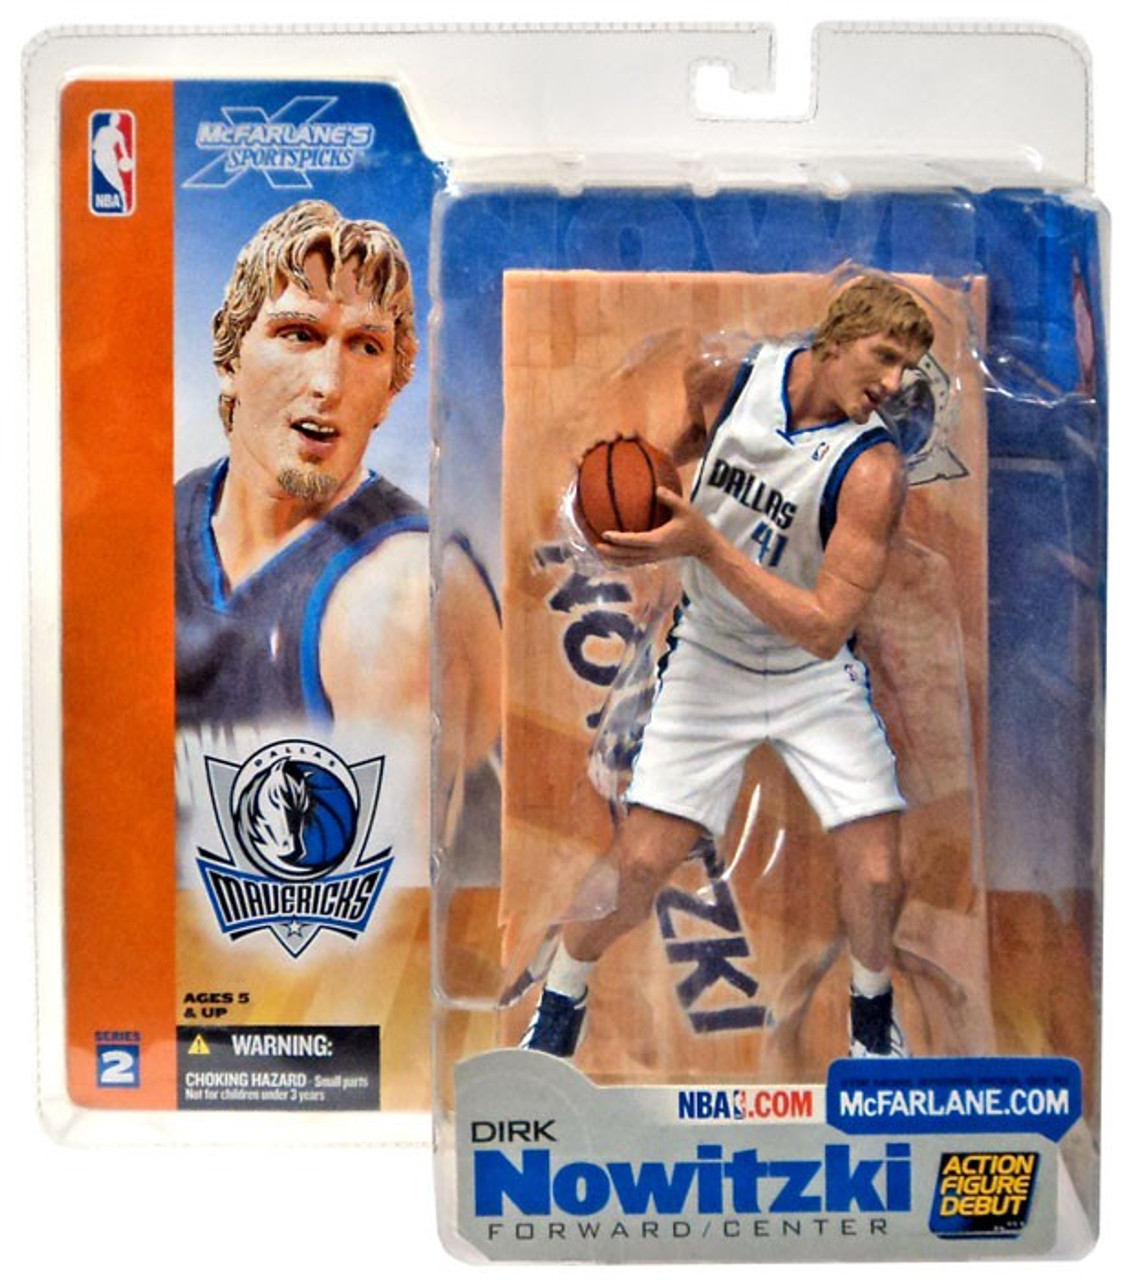 McFarlane Toys NBA Dallas Mavericks Sports Picks Series 2 Dirk Nowitzki Action Figure [White Jersey Variant]